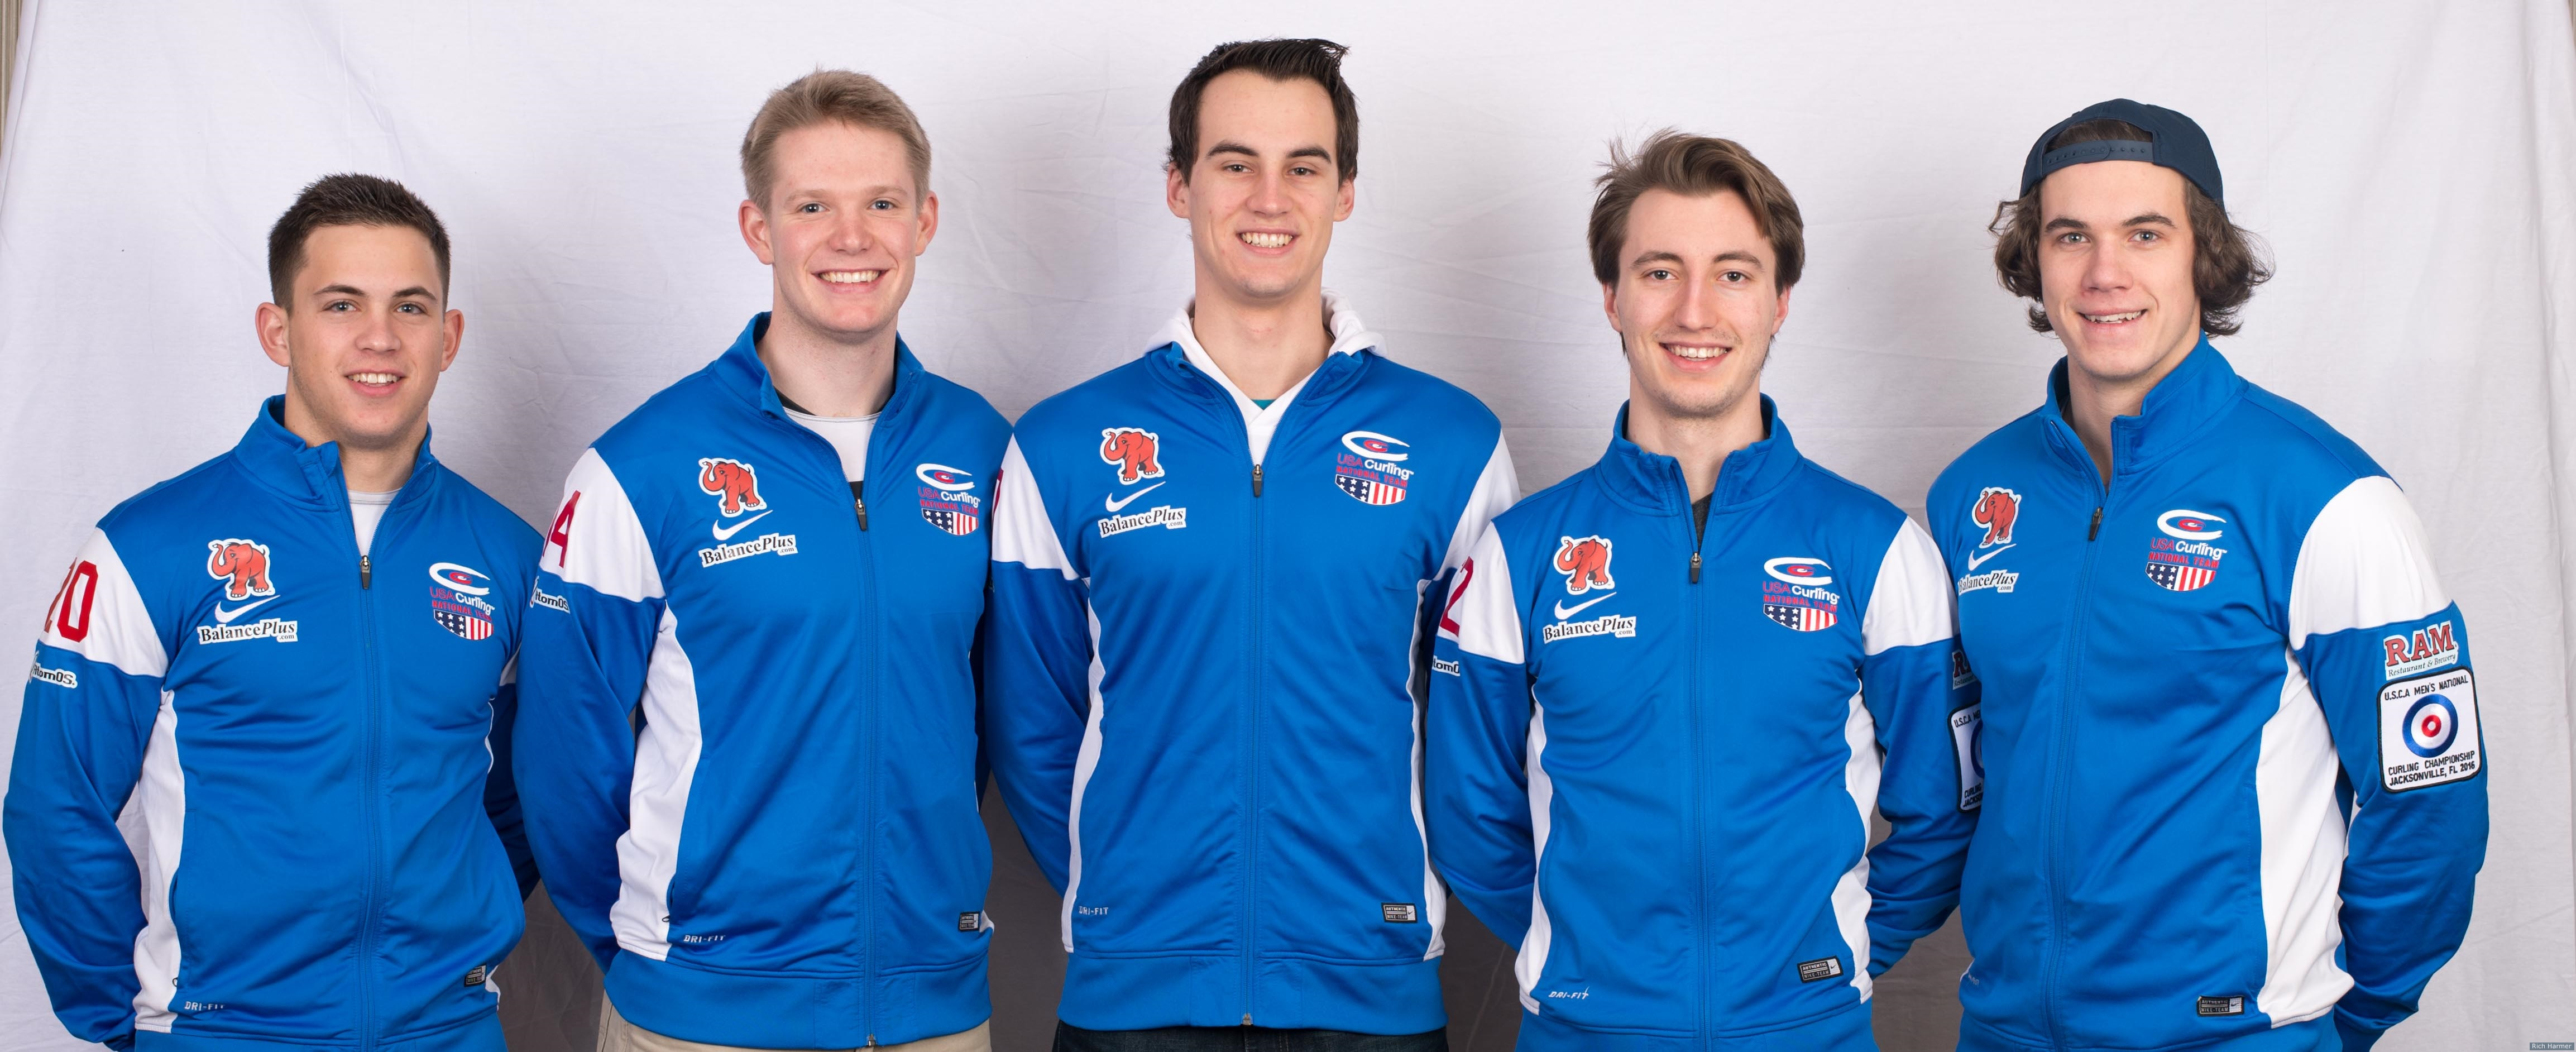 USA Curling National Championship Includes Two BSU Students